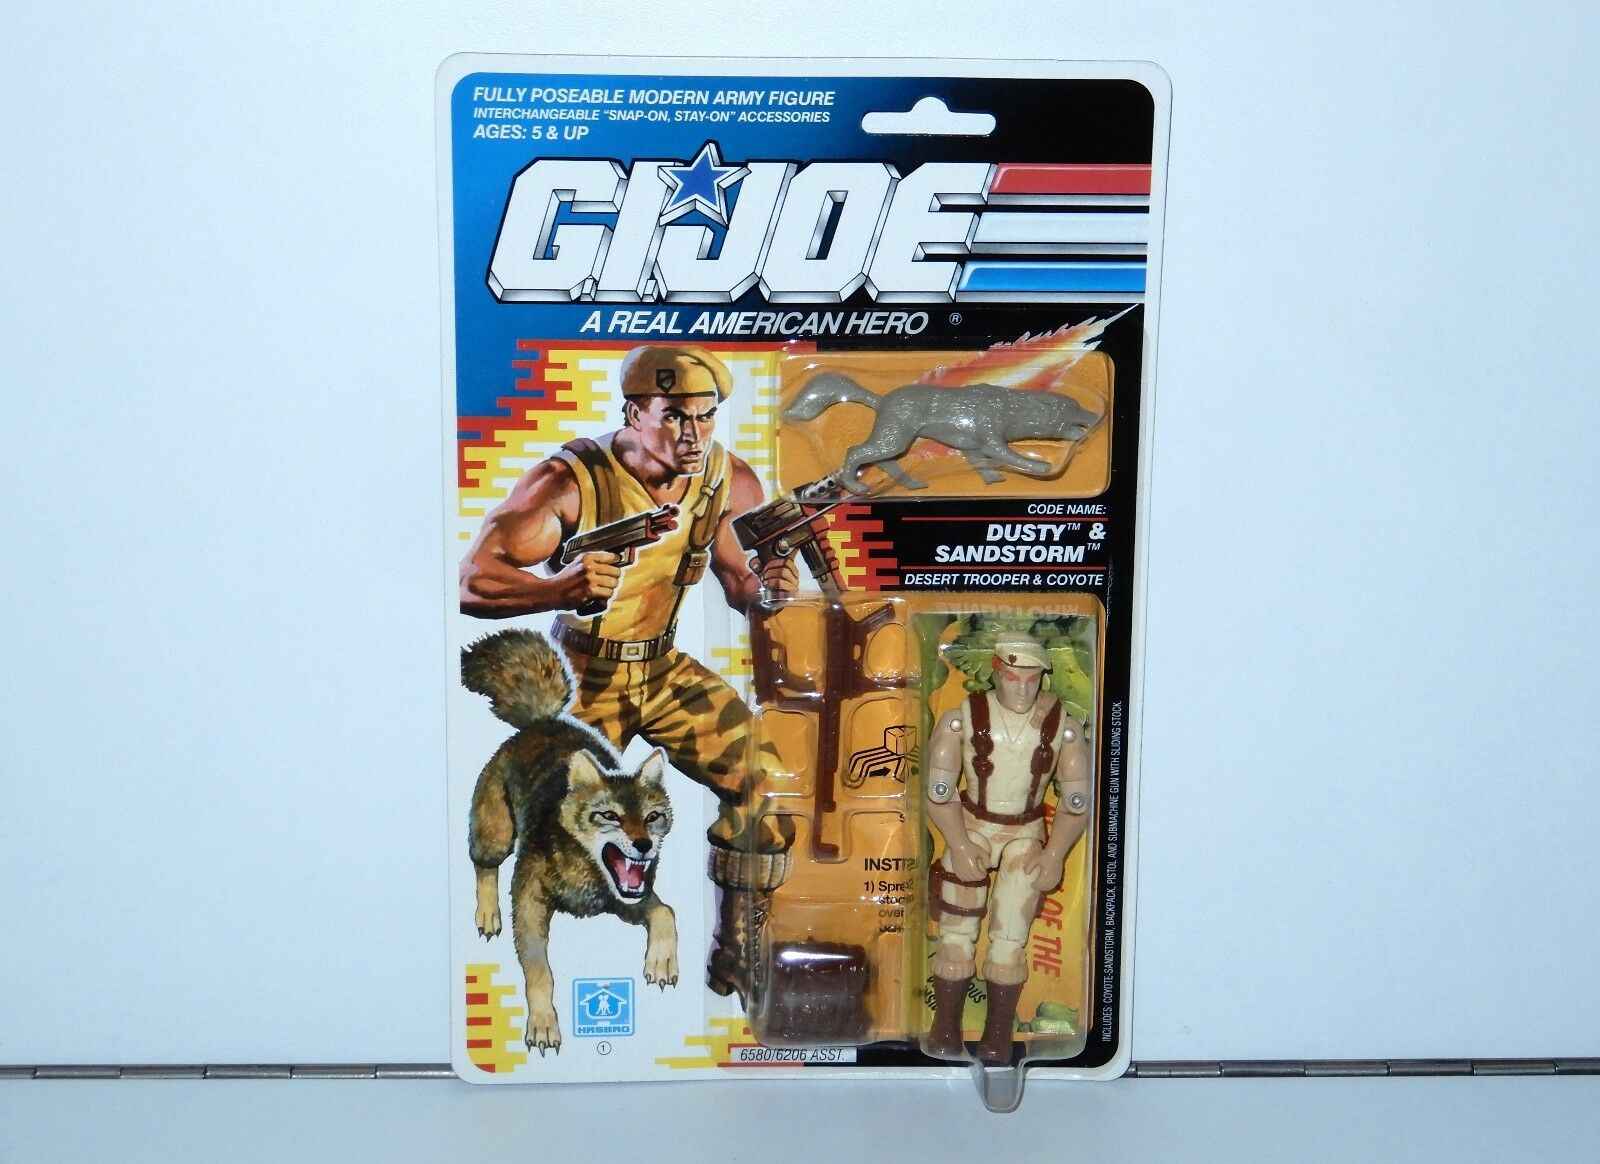 1991 GI JOE DUSTY & SANDSTORM v3 MOC MOSC HASBRO USA